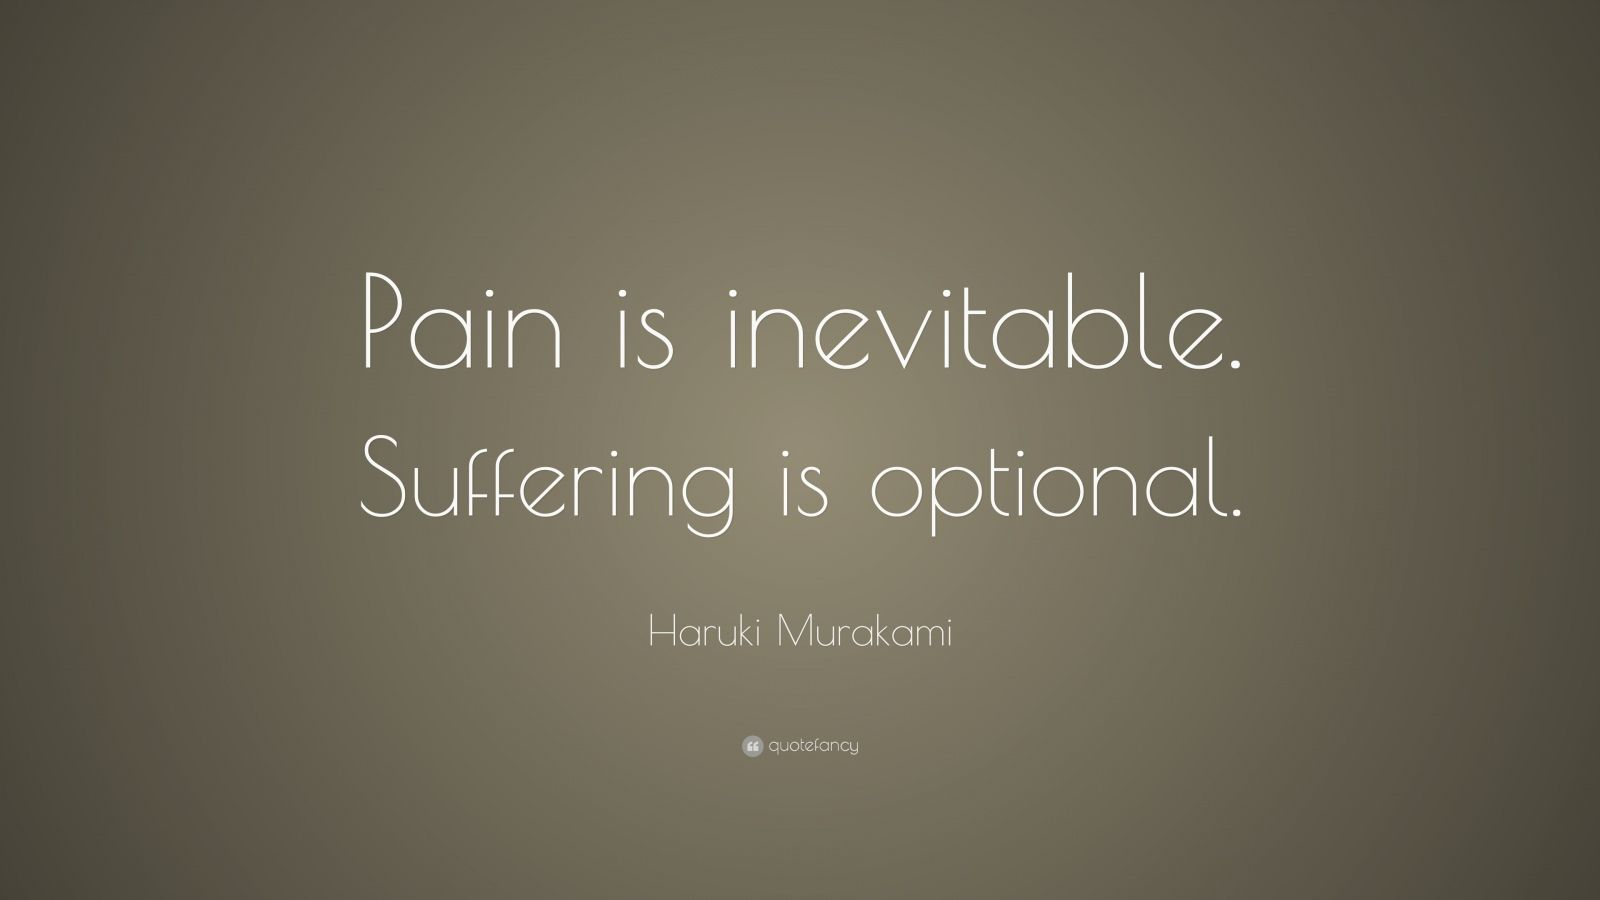 Inspirational Quotes About Life Wallpaper Haruki Murakami Quote Pain Is Inevitable Suffering Is